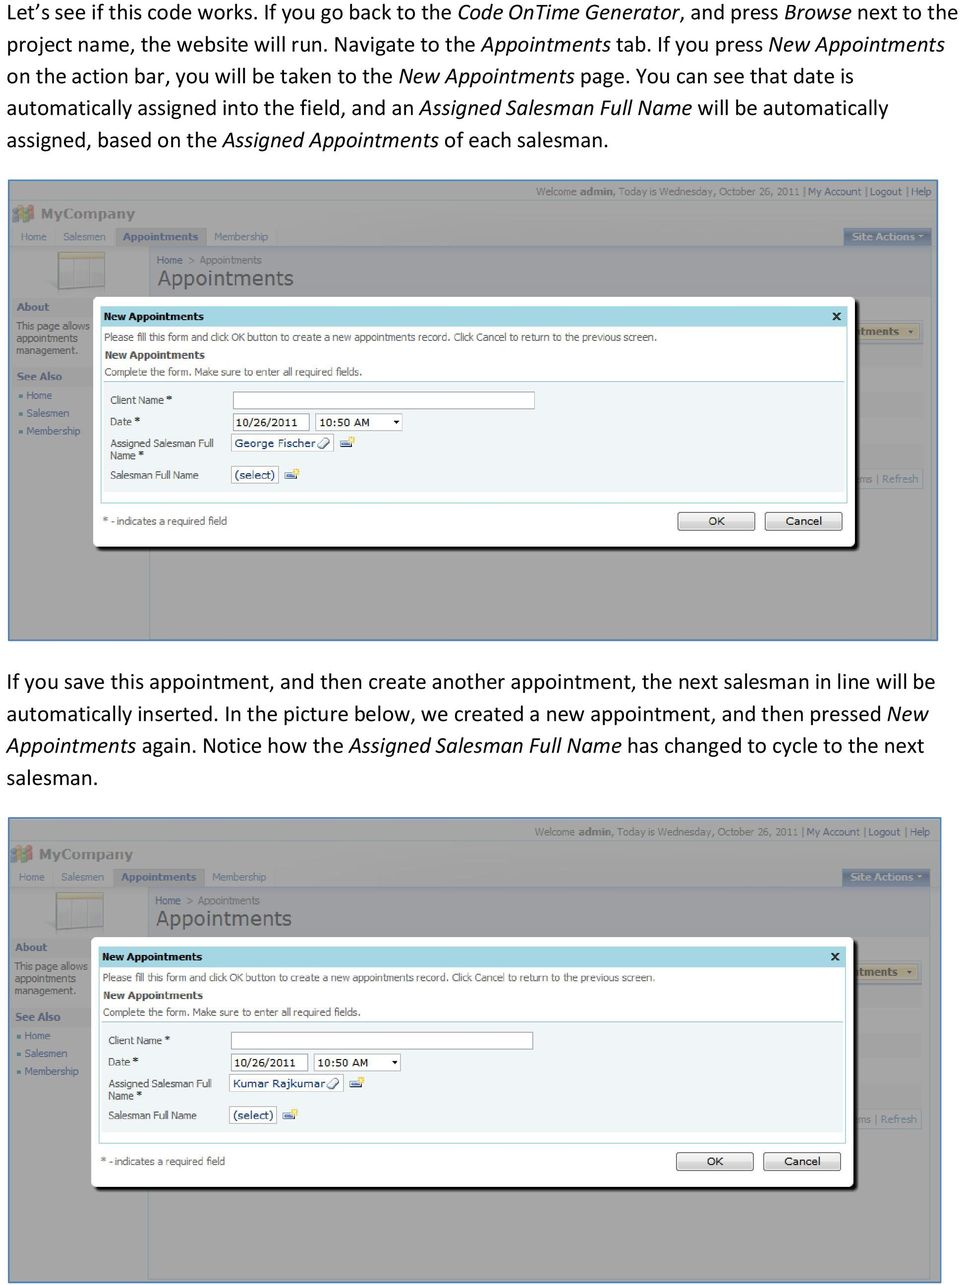 You can see that date is automatically assigned into the field, and an Assigned Salesman Full Name will be automatically assigned, based on the Assigned Appointments of each salesman.